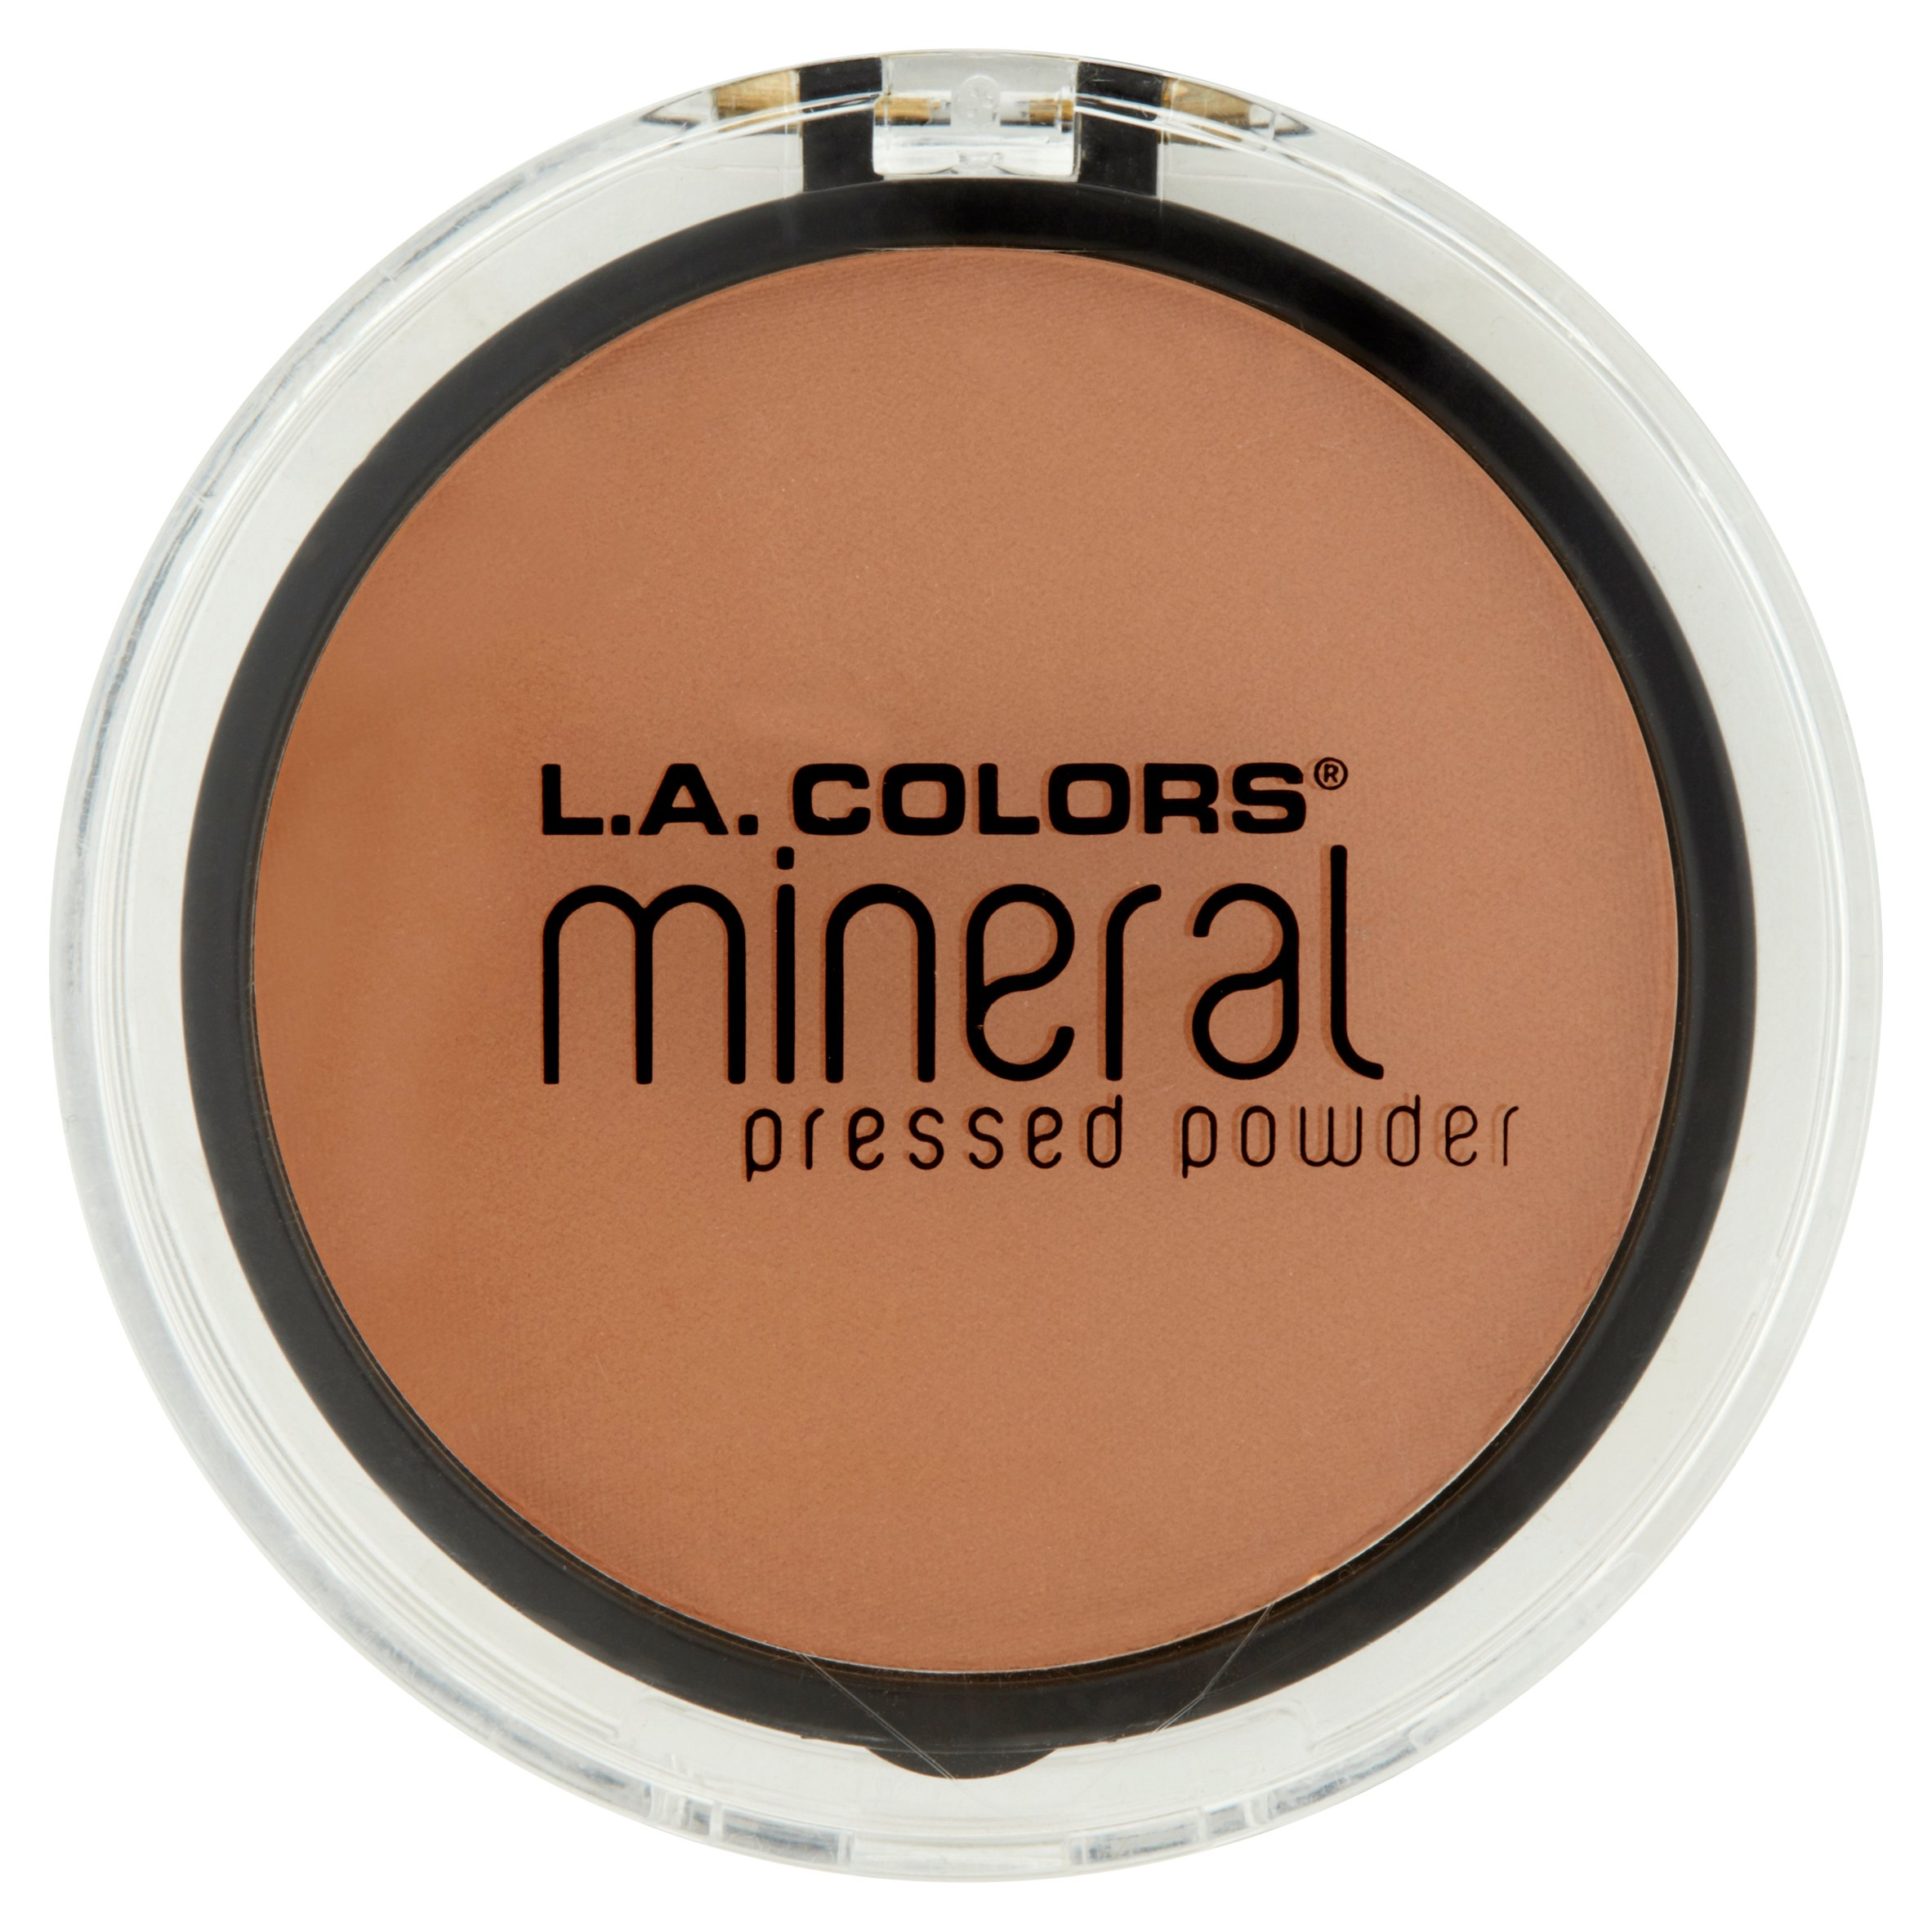 L.A. Colors CMP310 Toasted Almond Mineral Pressed Powder, 0.26 oz